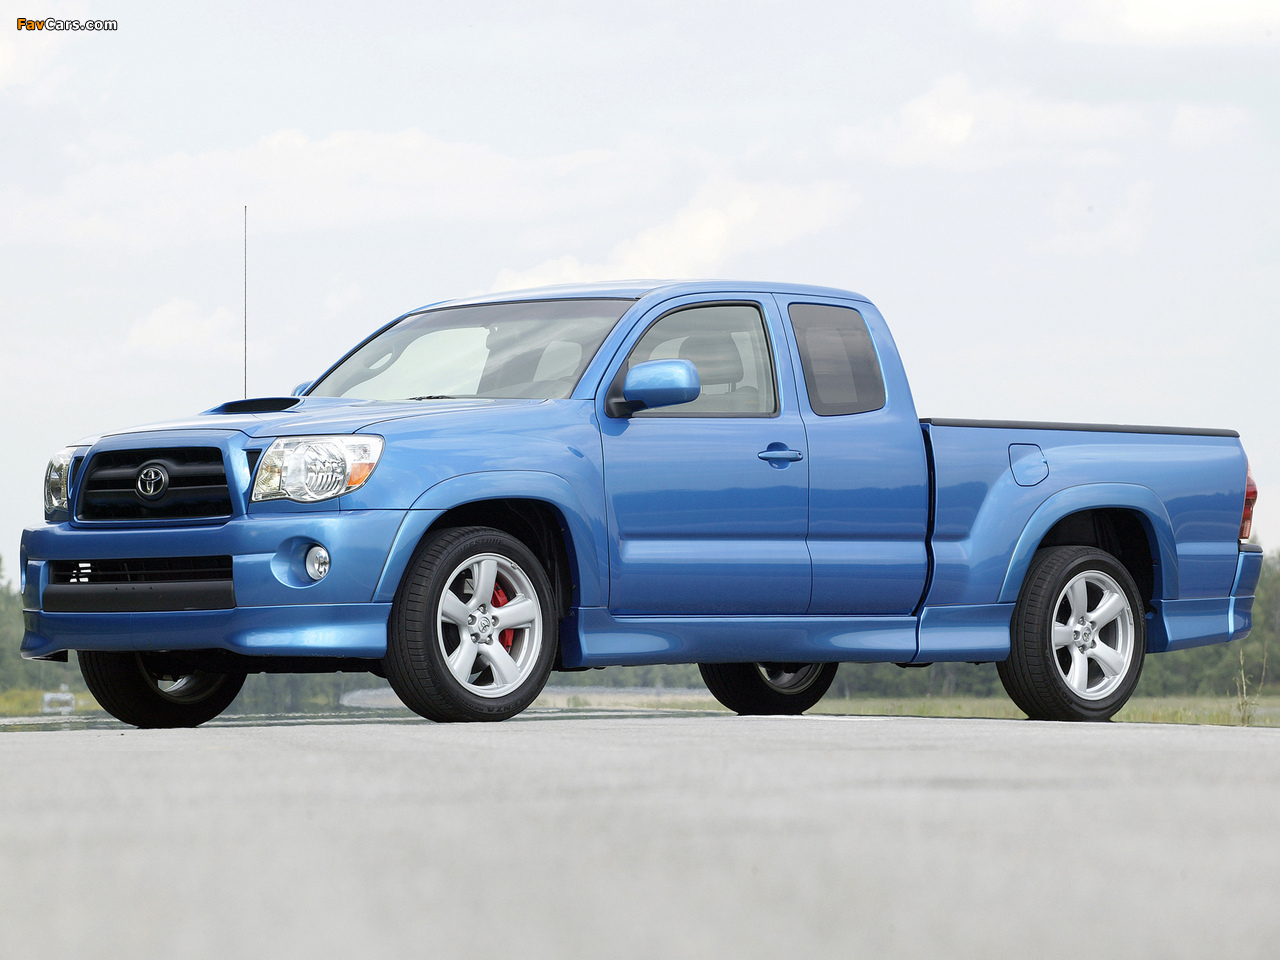 Toyota Tacoma X Runner Access Cab 2006 12 Wallpapers